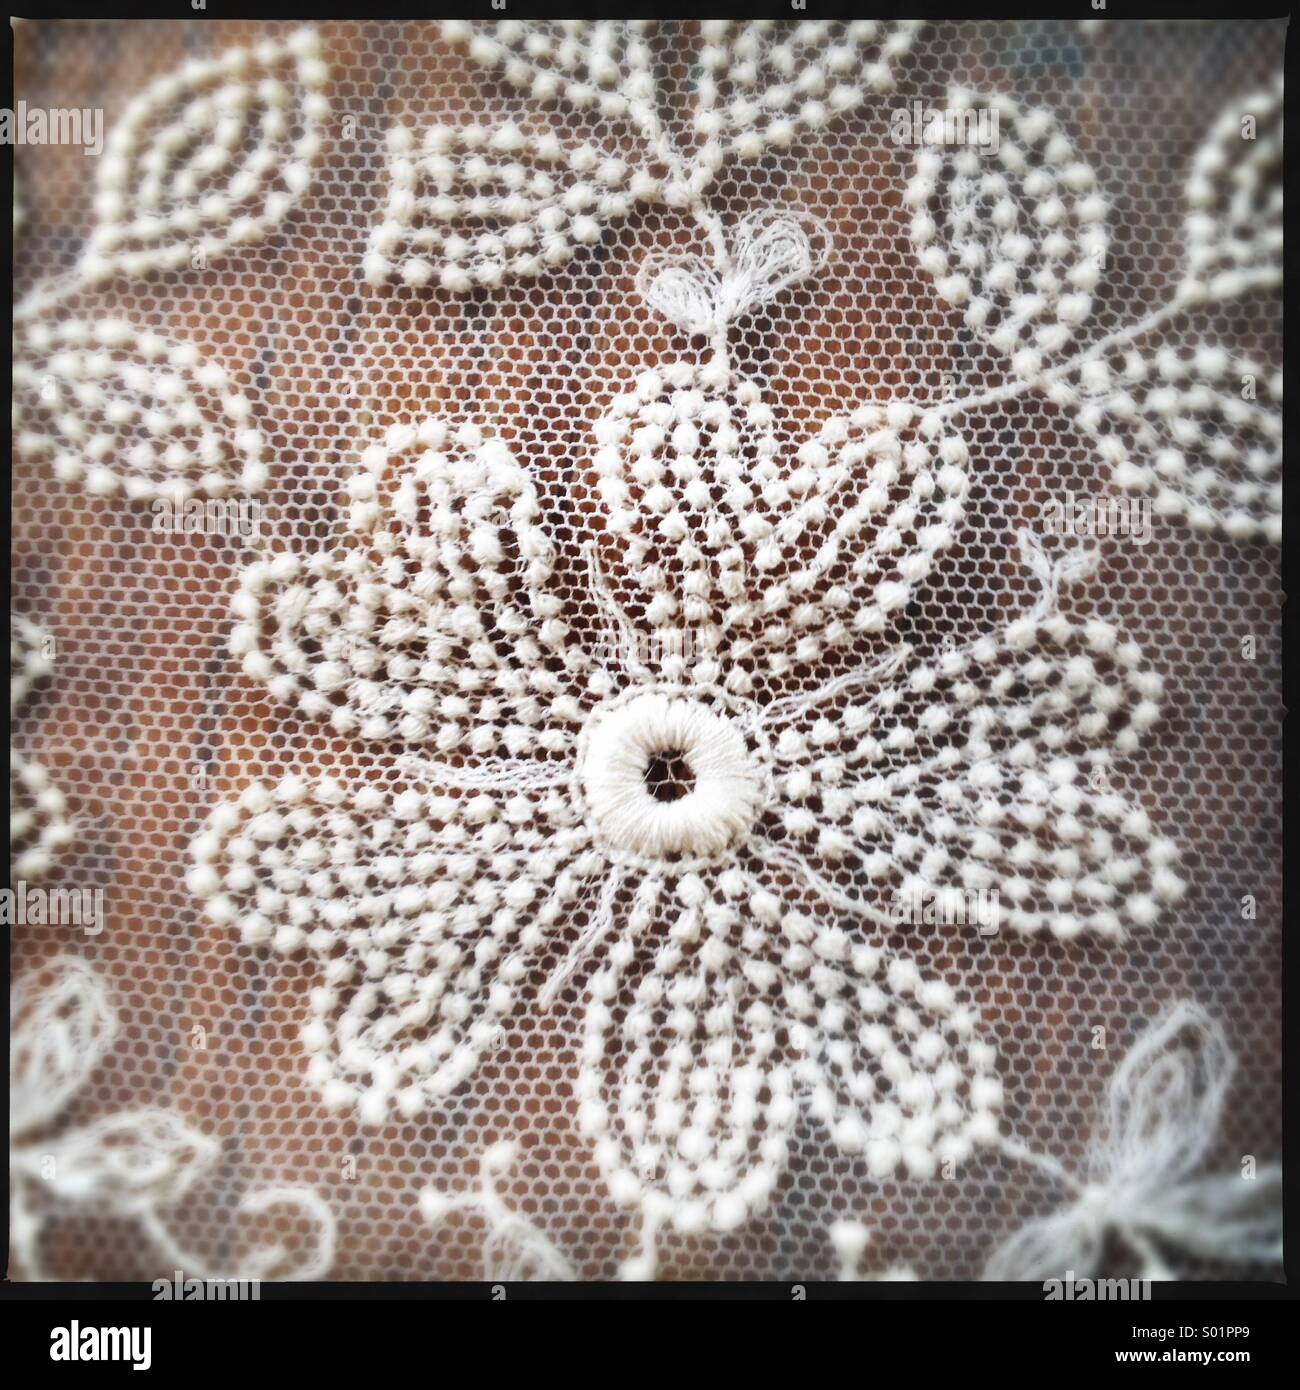 Antique Lace on Wood Surface - Stock Image